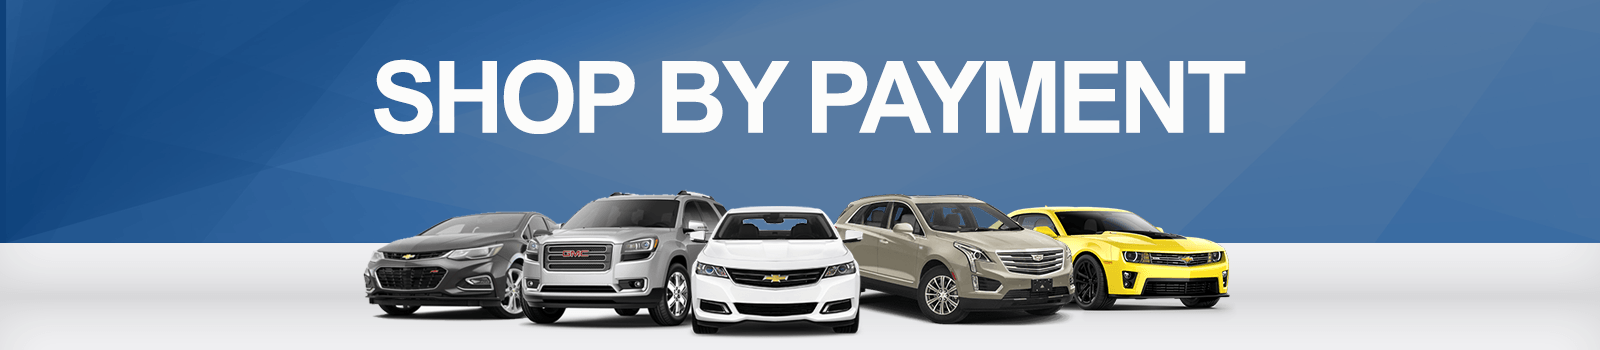 Shop By Payment | Huron Motor Products